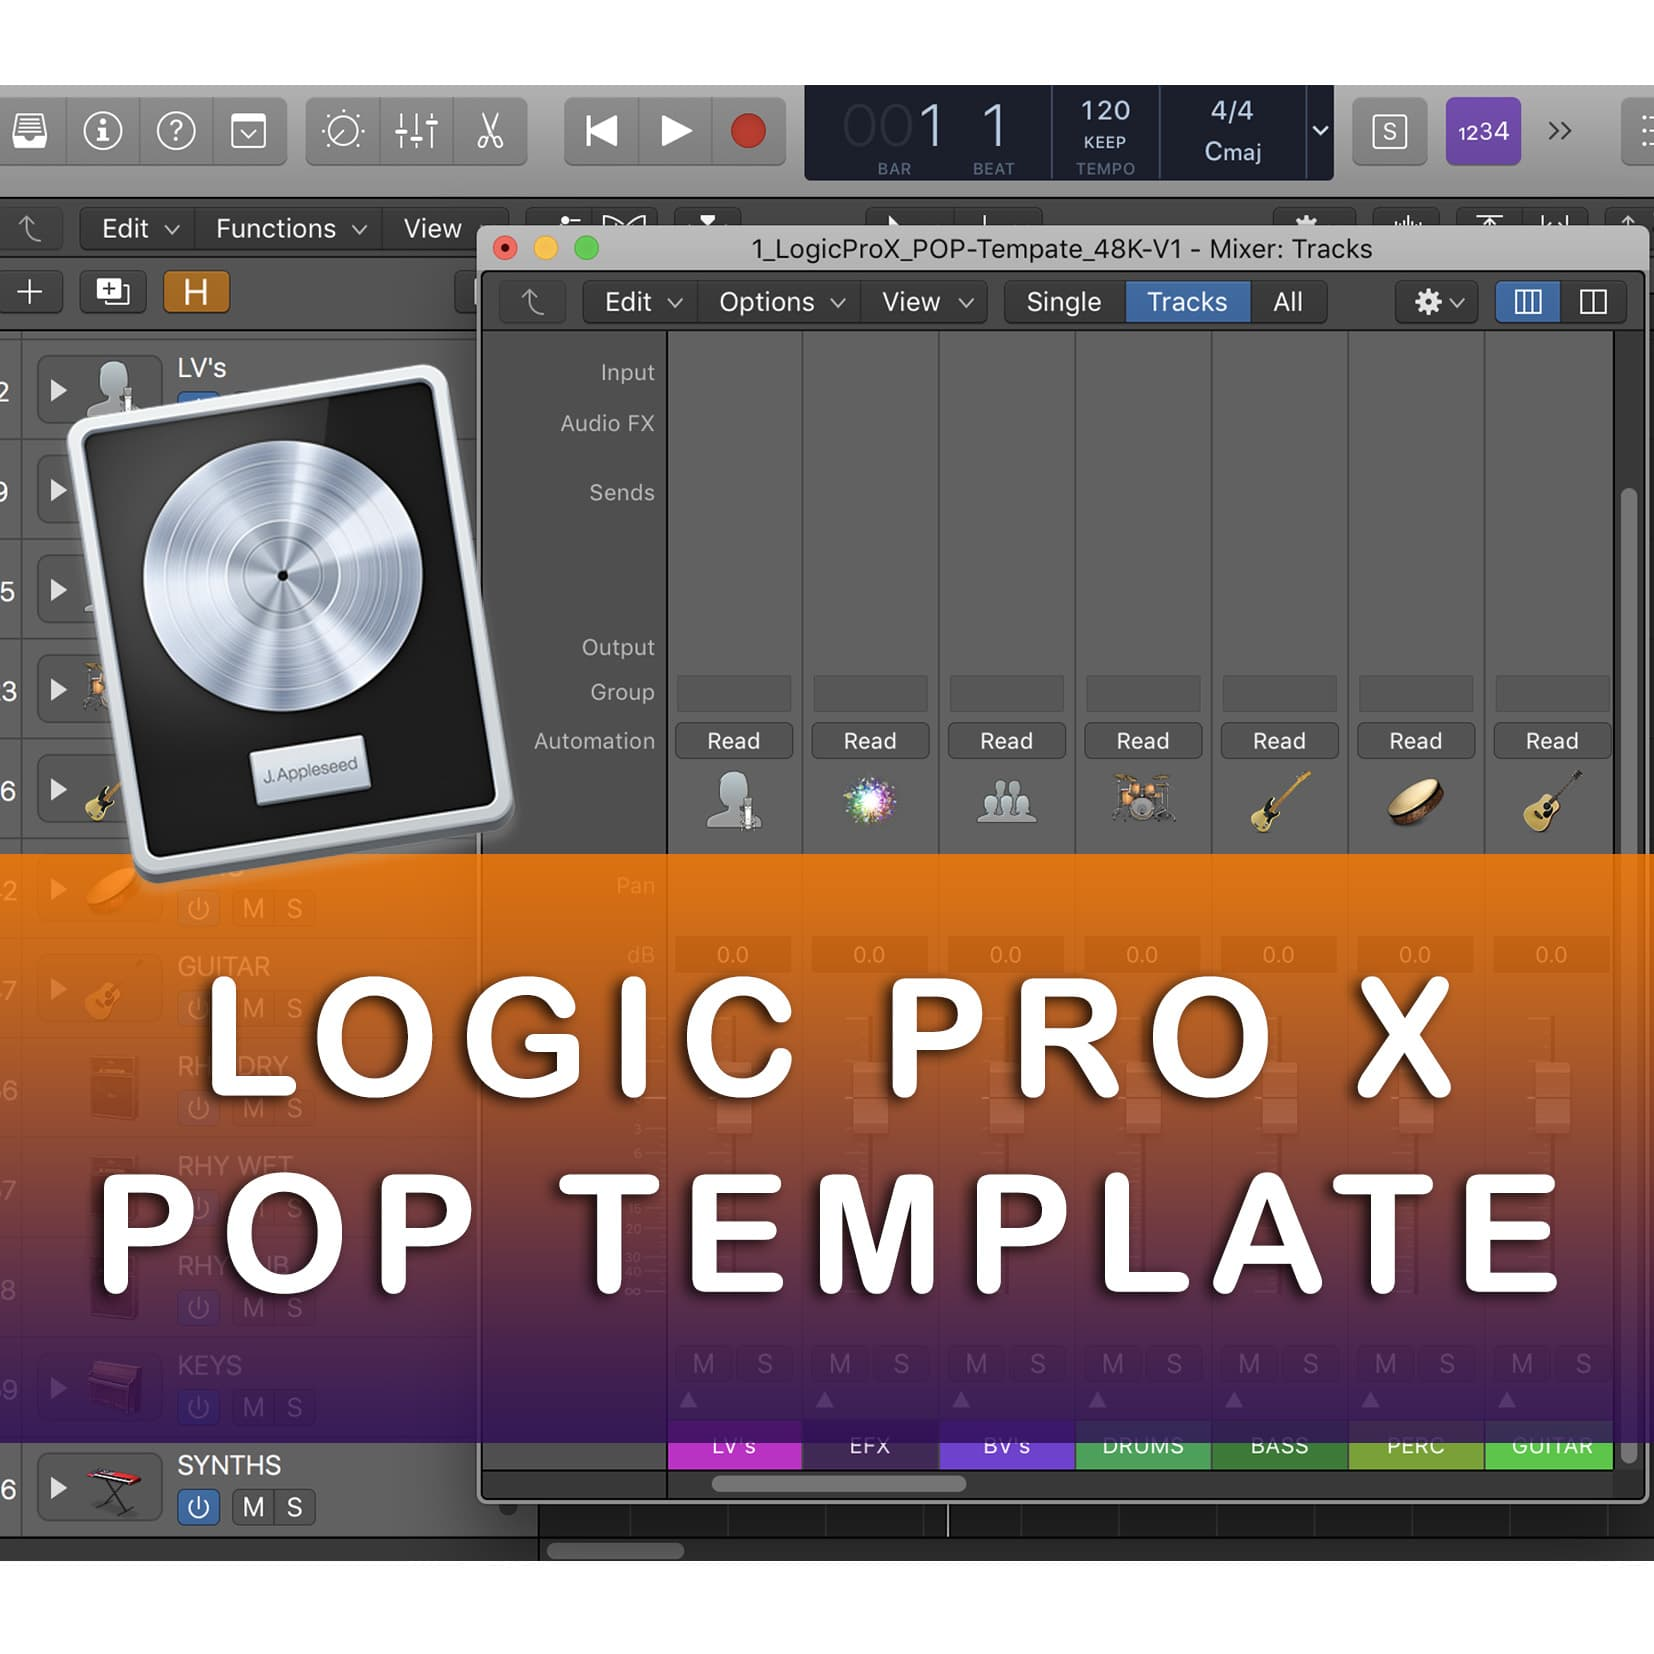 Logic pro x user guide pdf